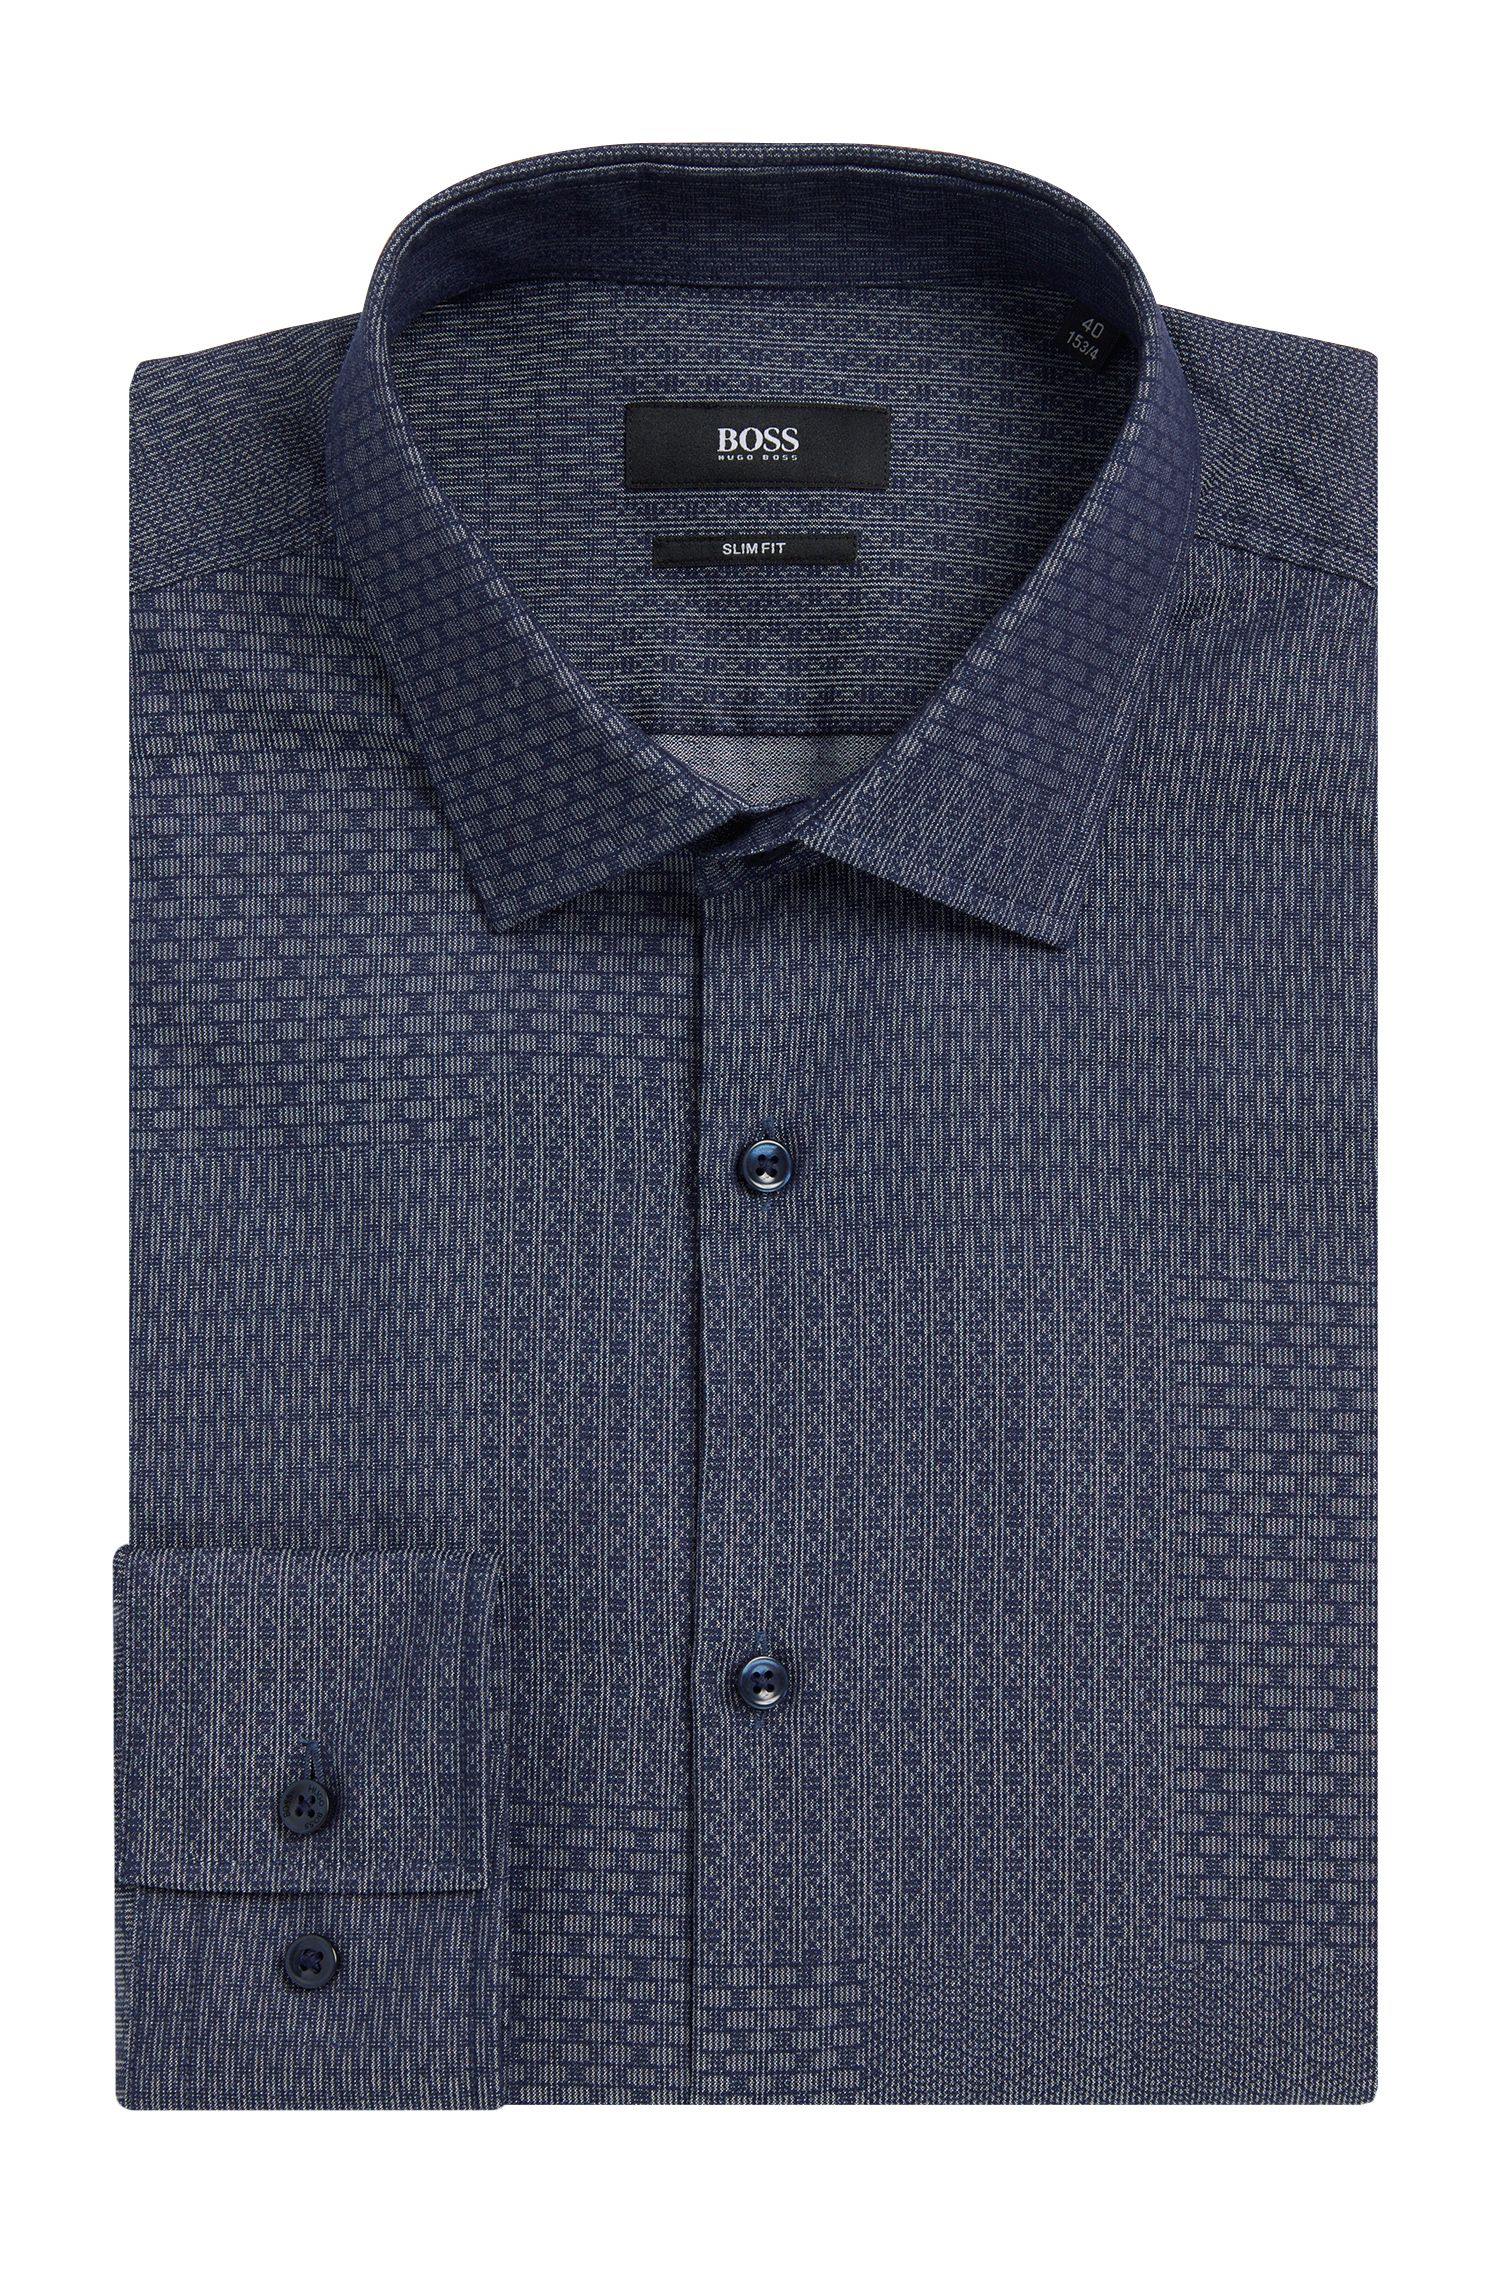 Dobby Patchwork Cotton Dress Shirt, Slim Fit | Jenno